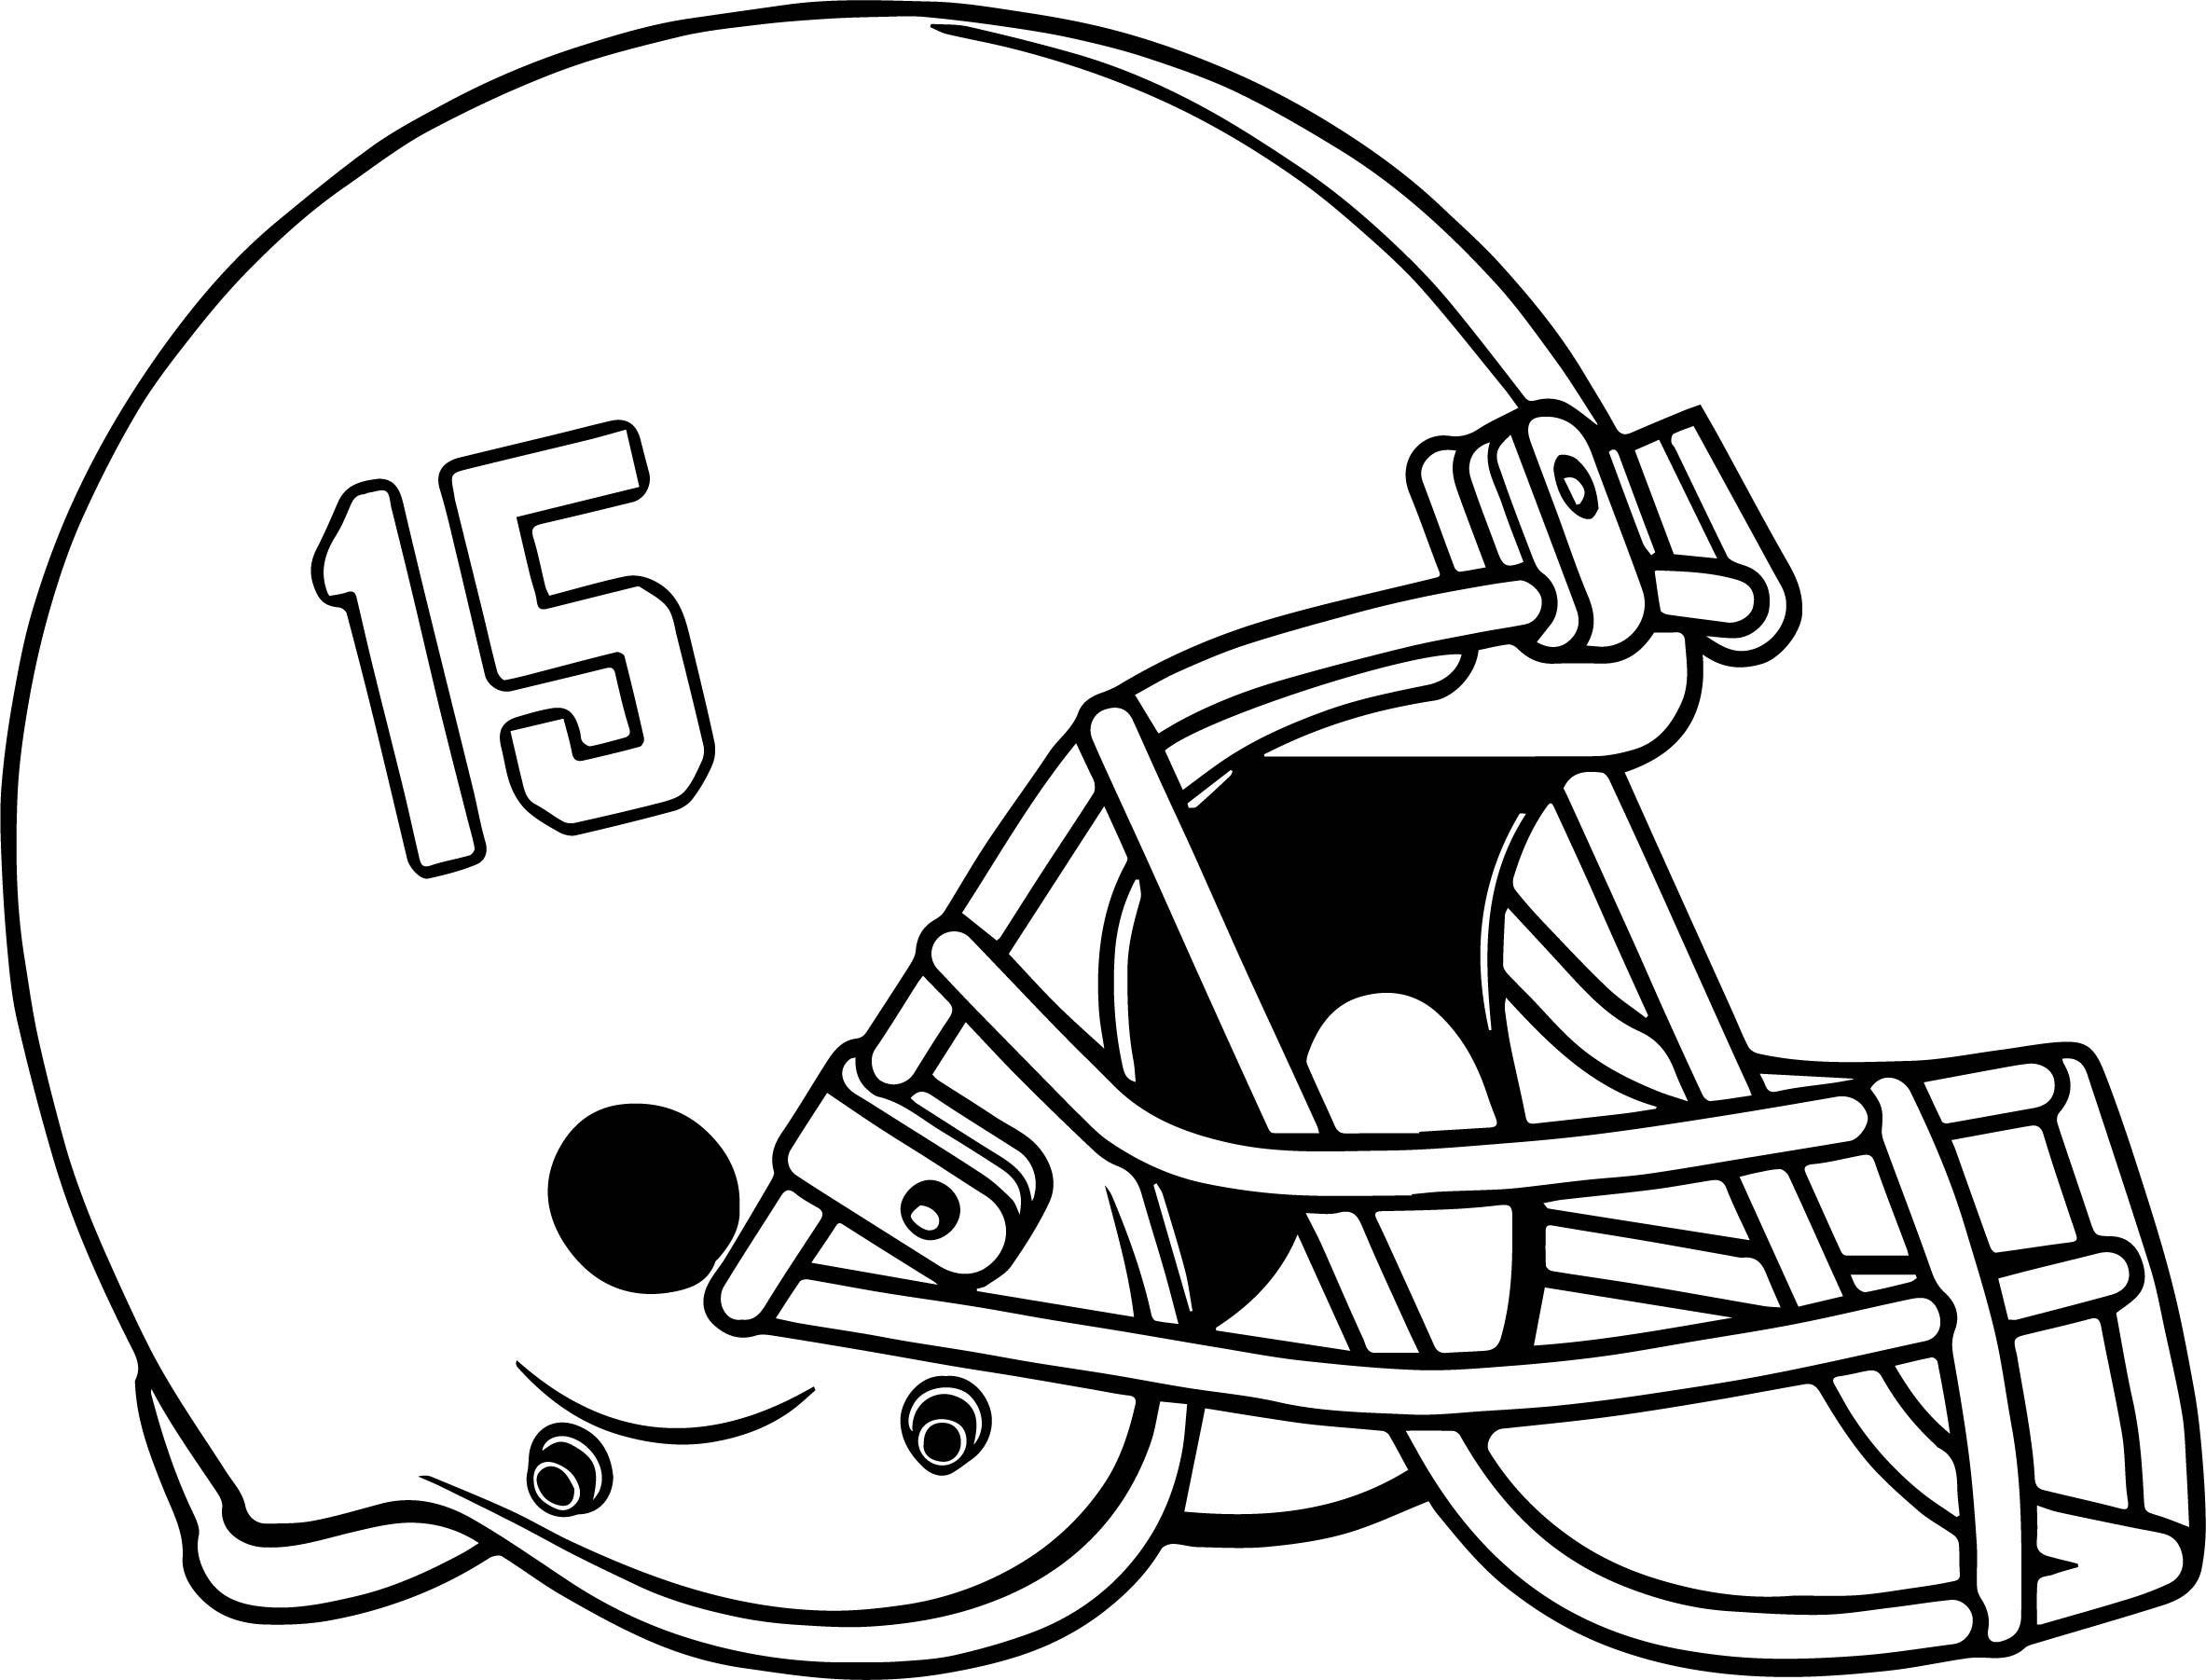 2366x1802 Bama Alabama Helmet Fifteen Number Coloring Page Wecoloringpage